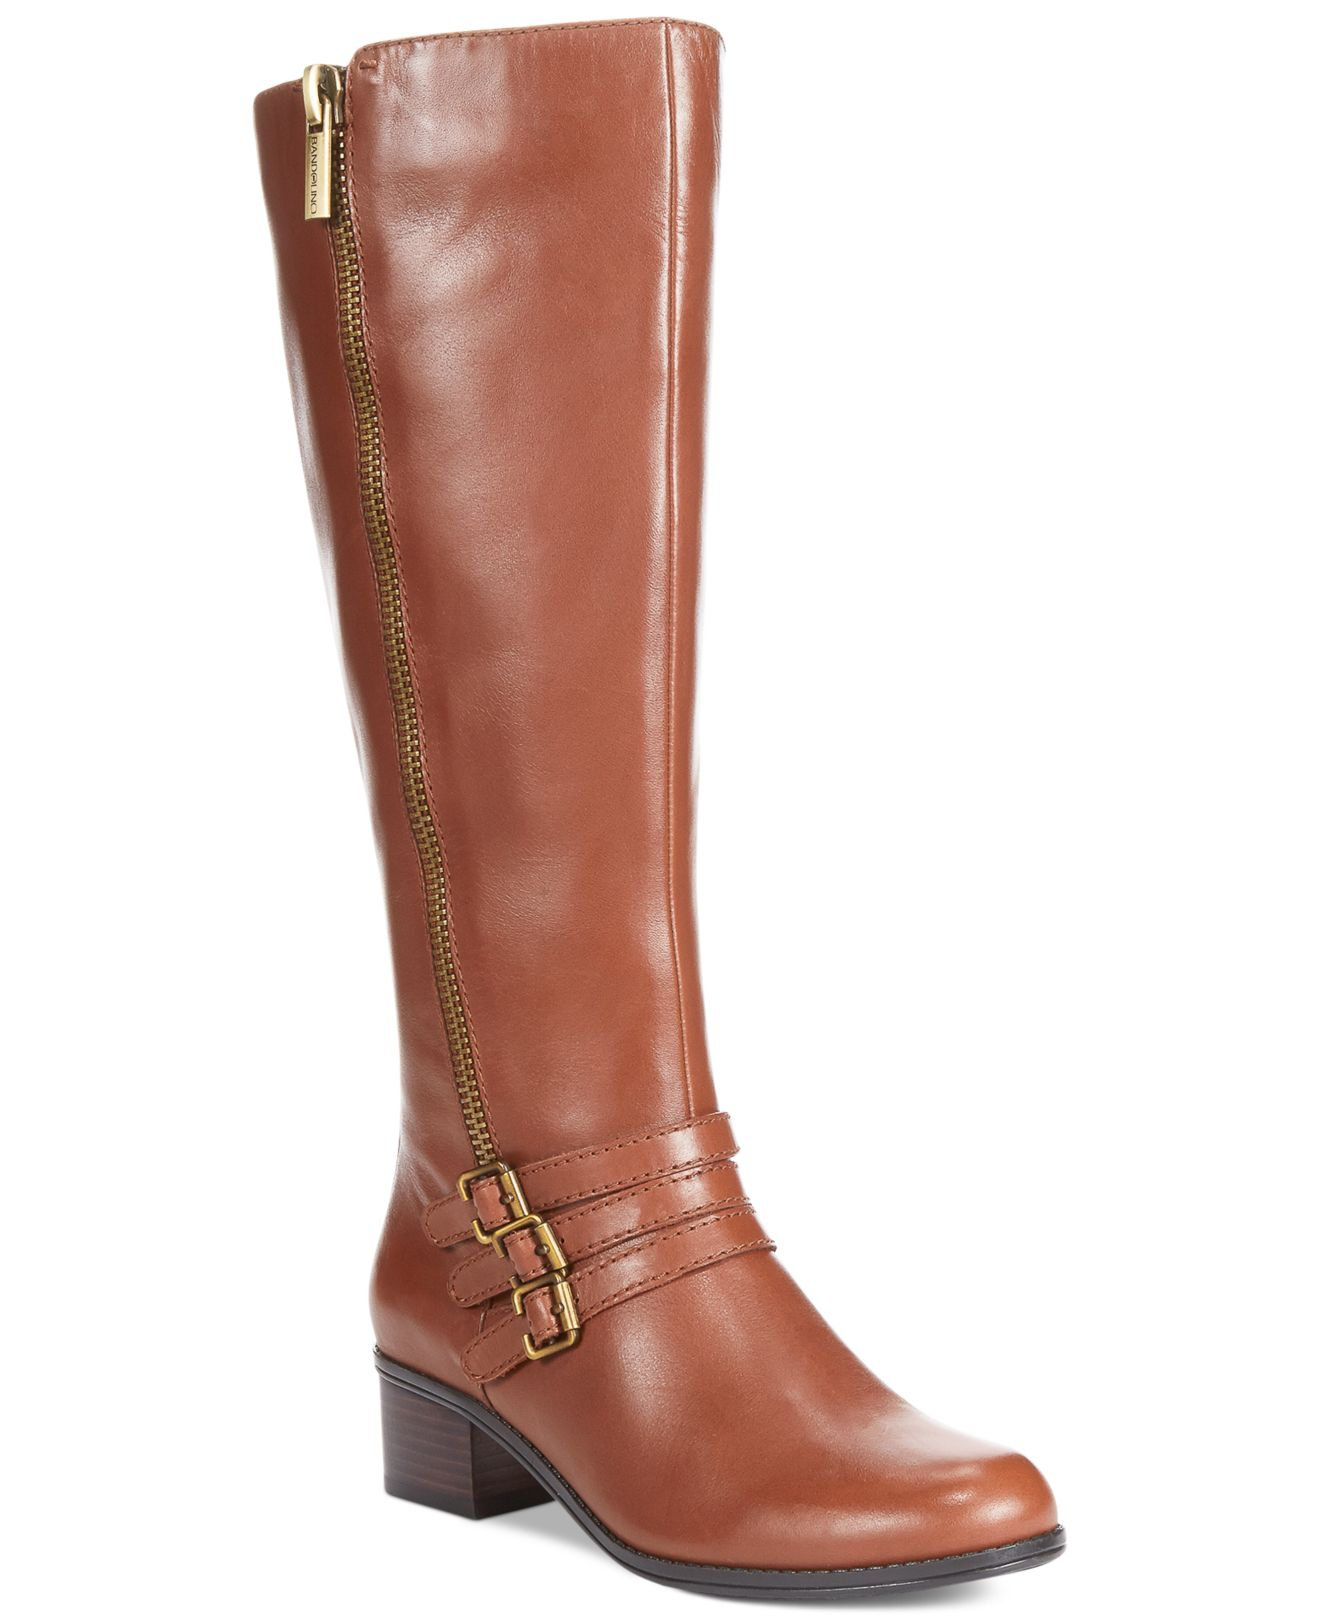 Buy Moda In Pelle by Aronas Tan Leather from our Sale range - Tan, Aronas, Block, Ankle Boots, PROMO, Leather, Leather - @ Moda in Pelle.